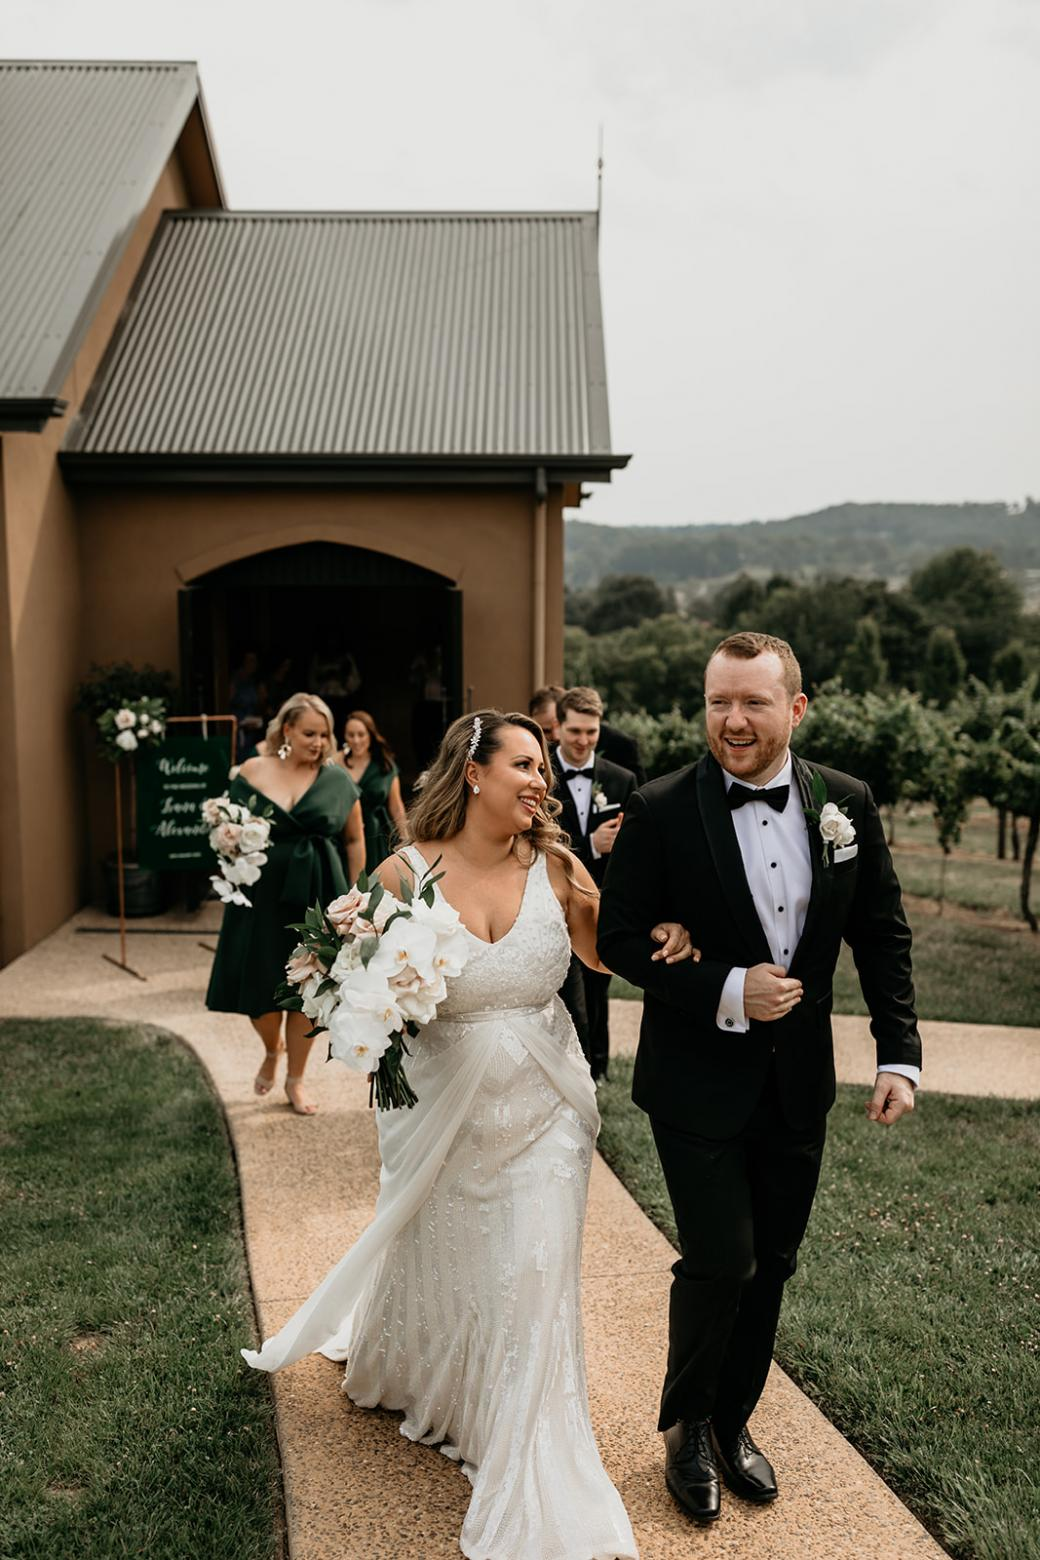 Fontanne gown by Karen Willis Holmes on curvy bride